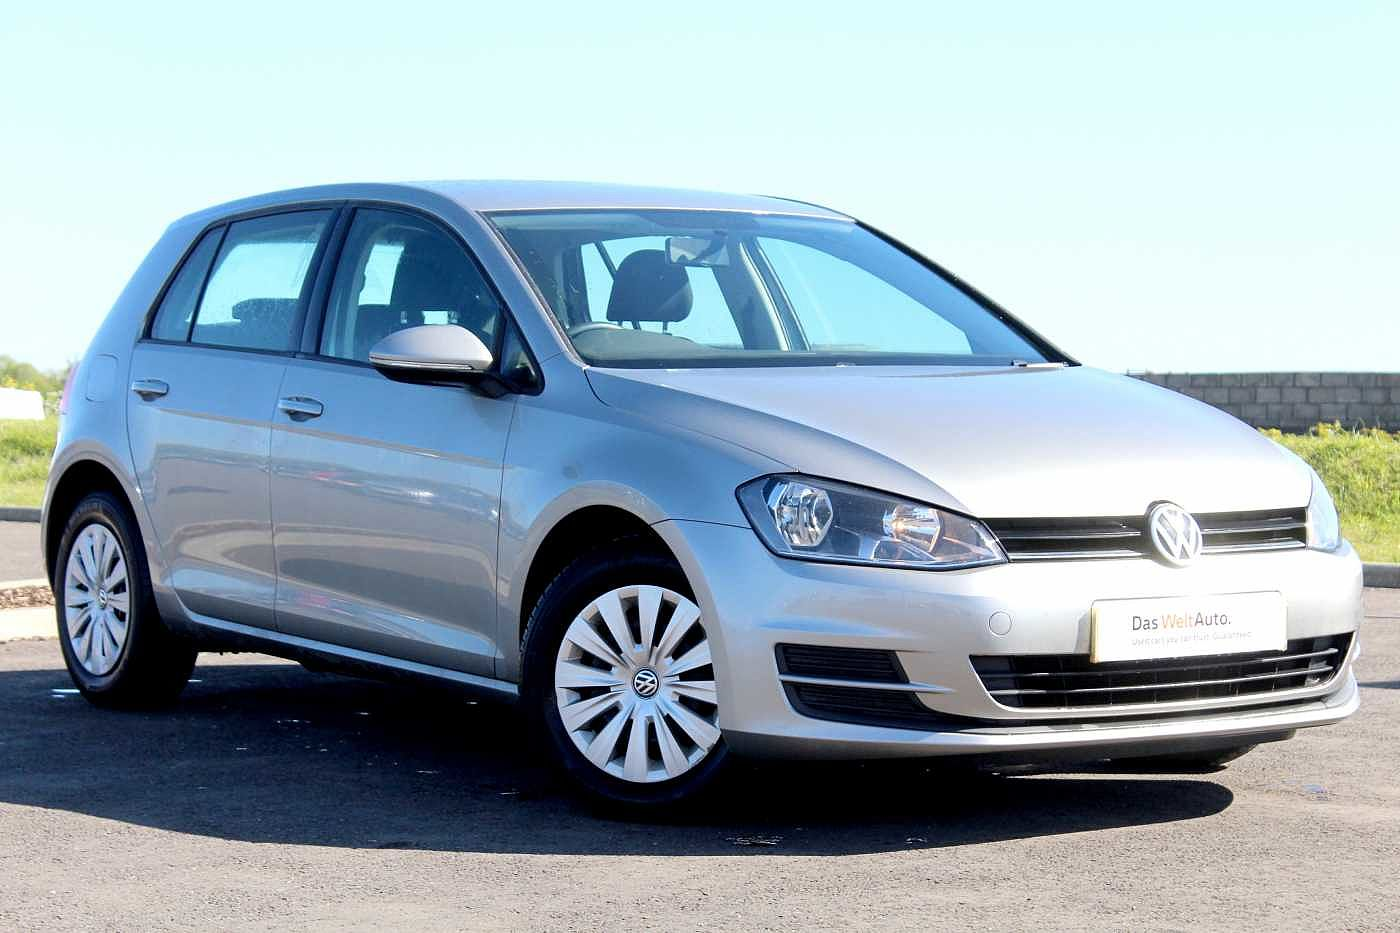 Volkswagen Golf 1.6 TDI S 105PS 5Dr